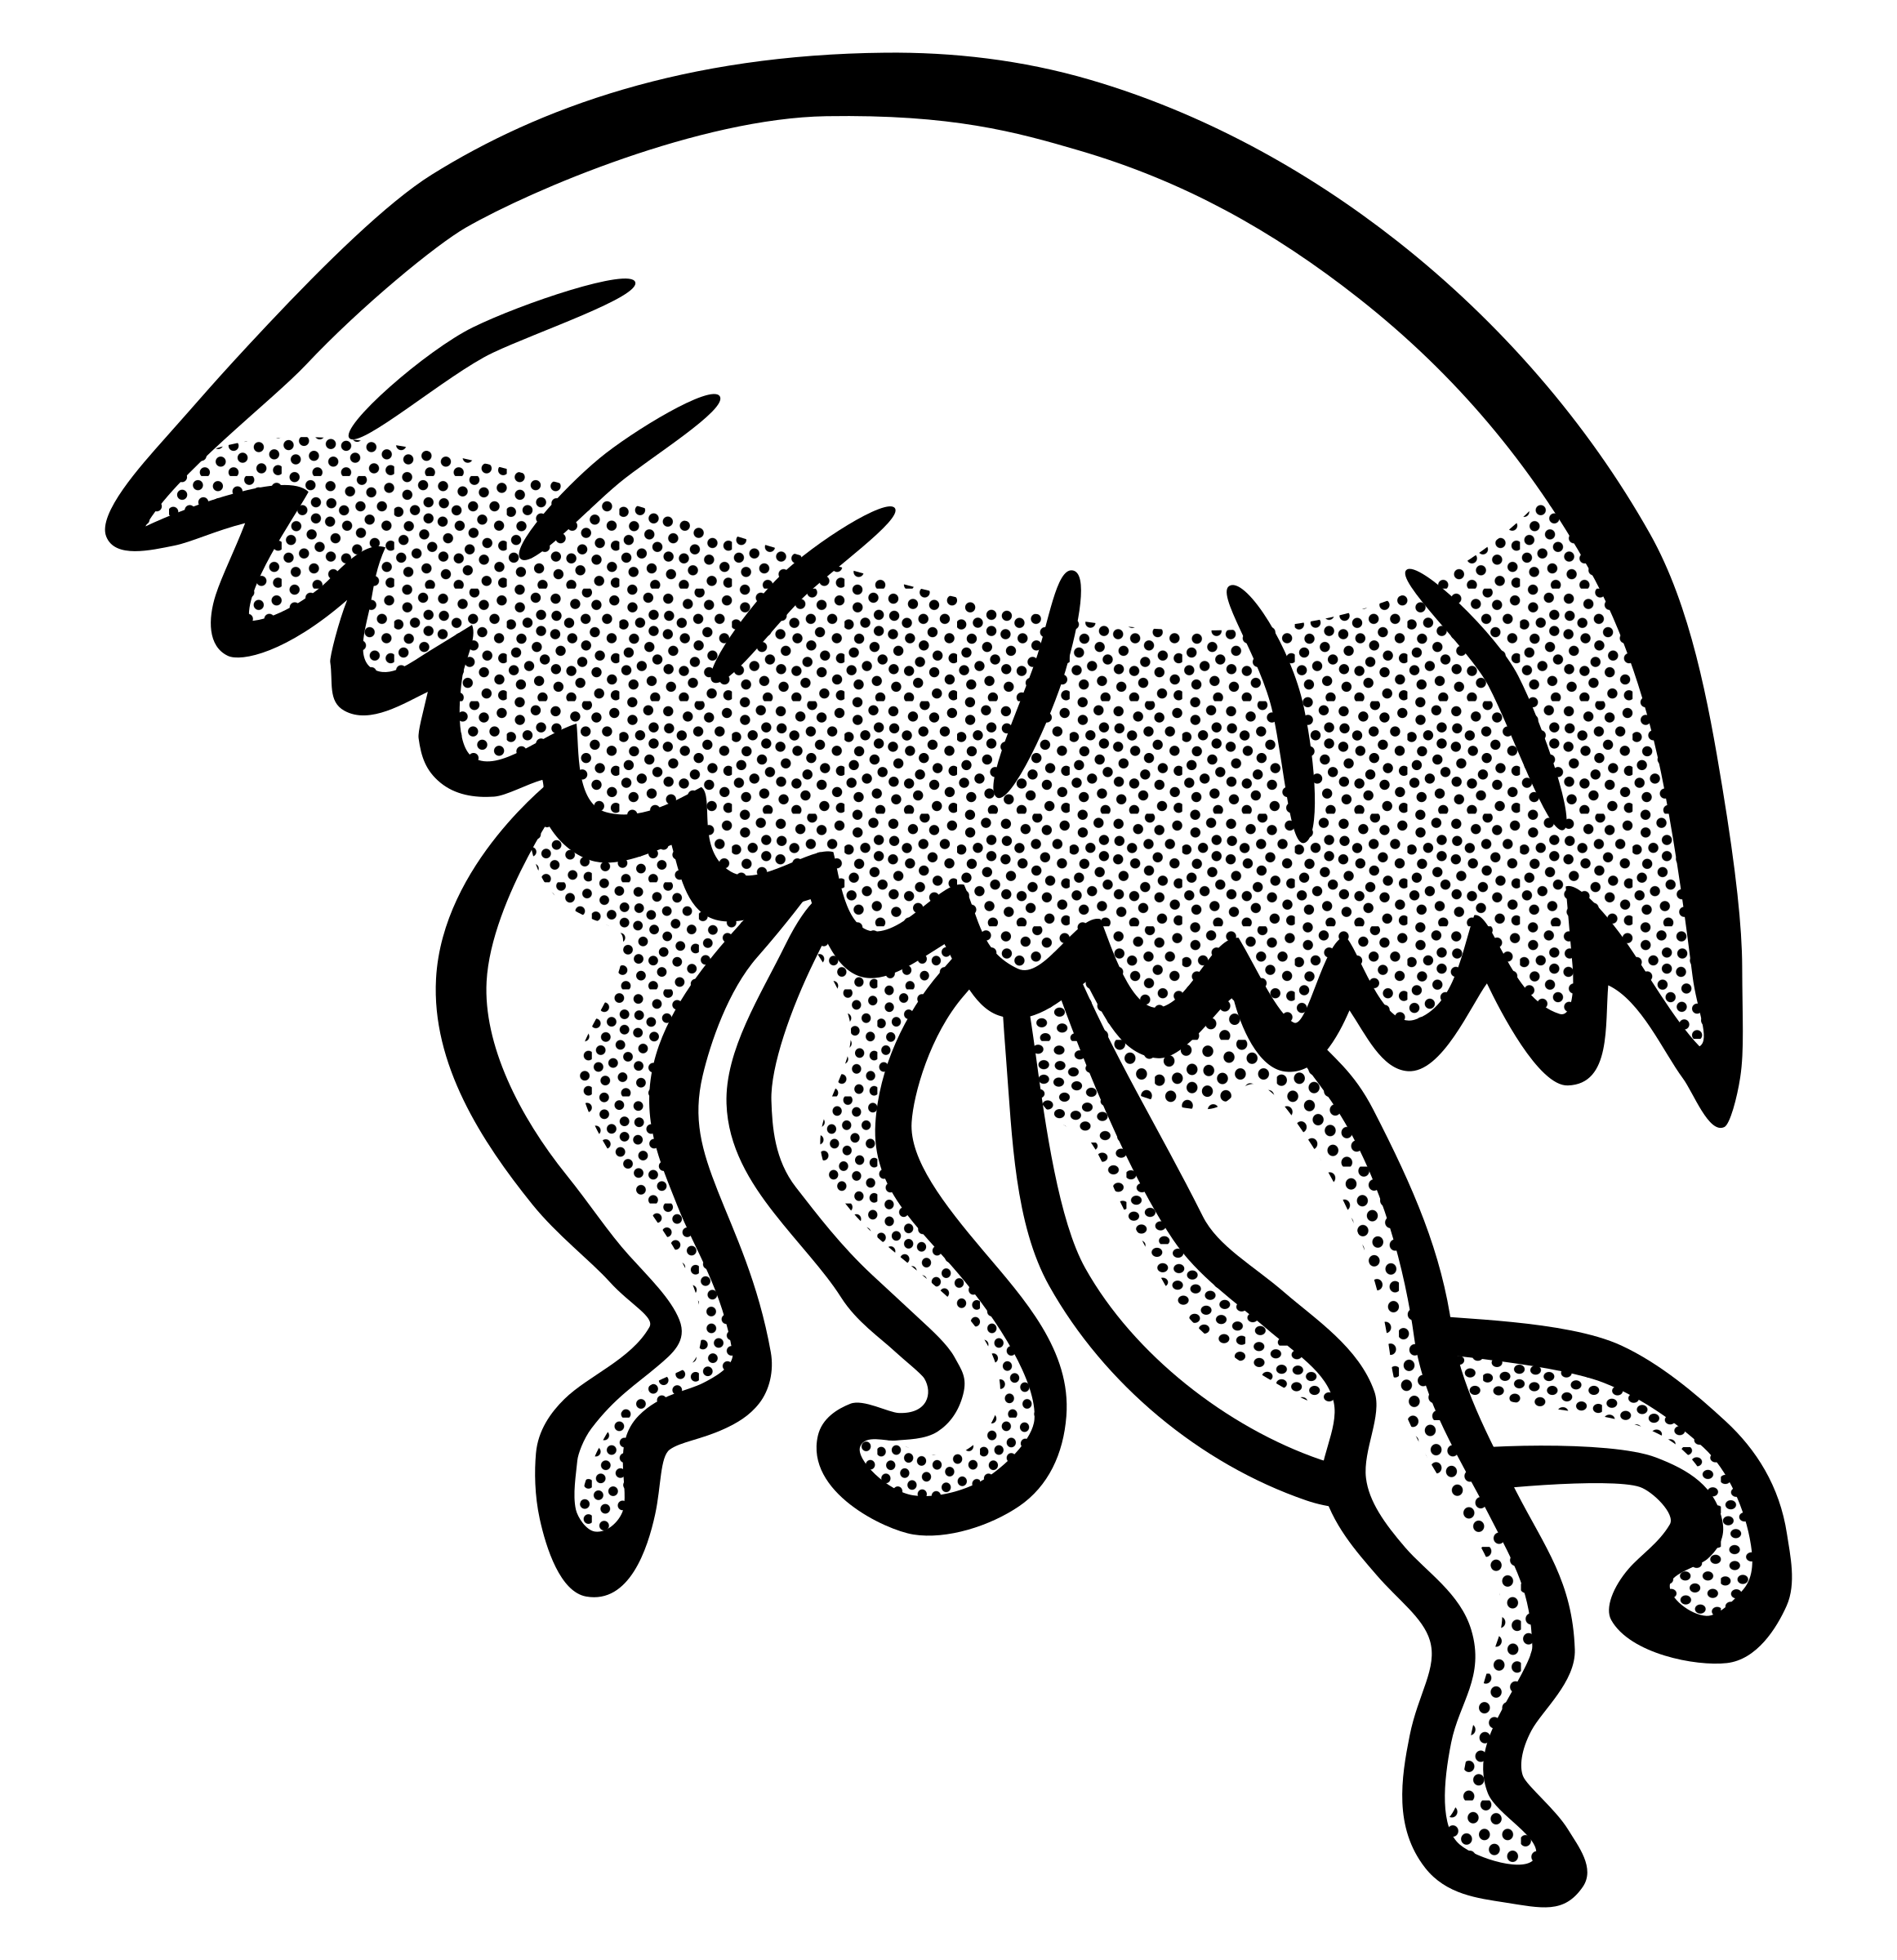 drawing jellyfish get inspired for realistic jellyfish clipart black and drawing jellyfish